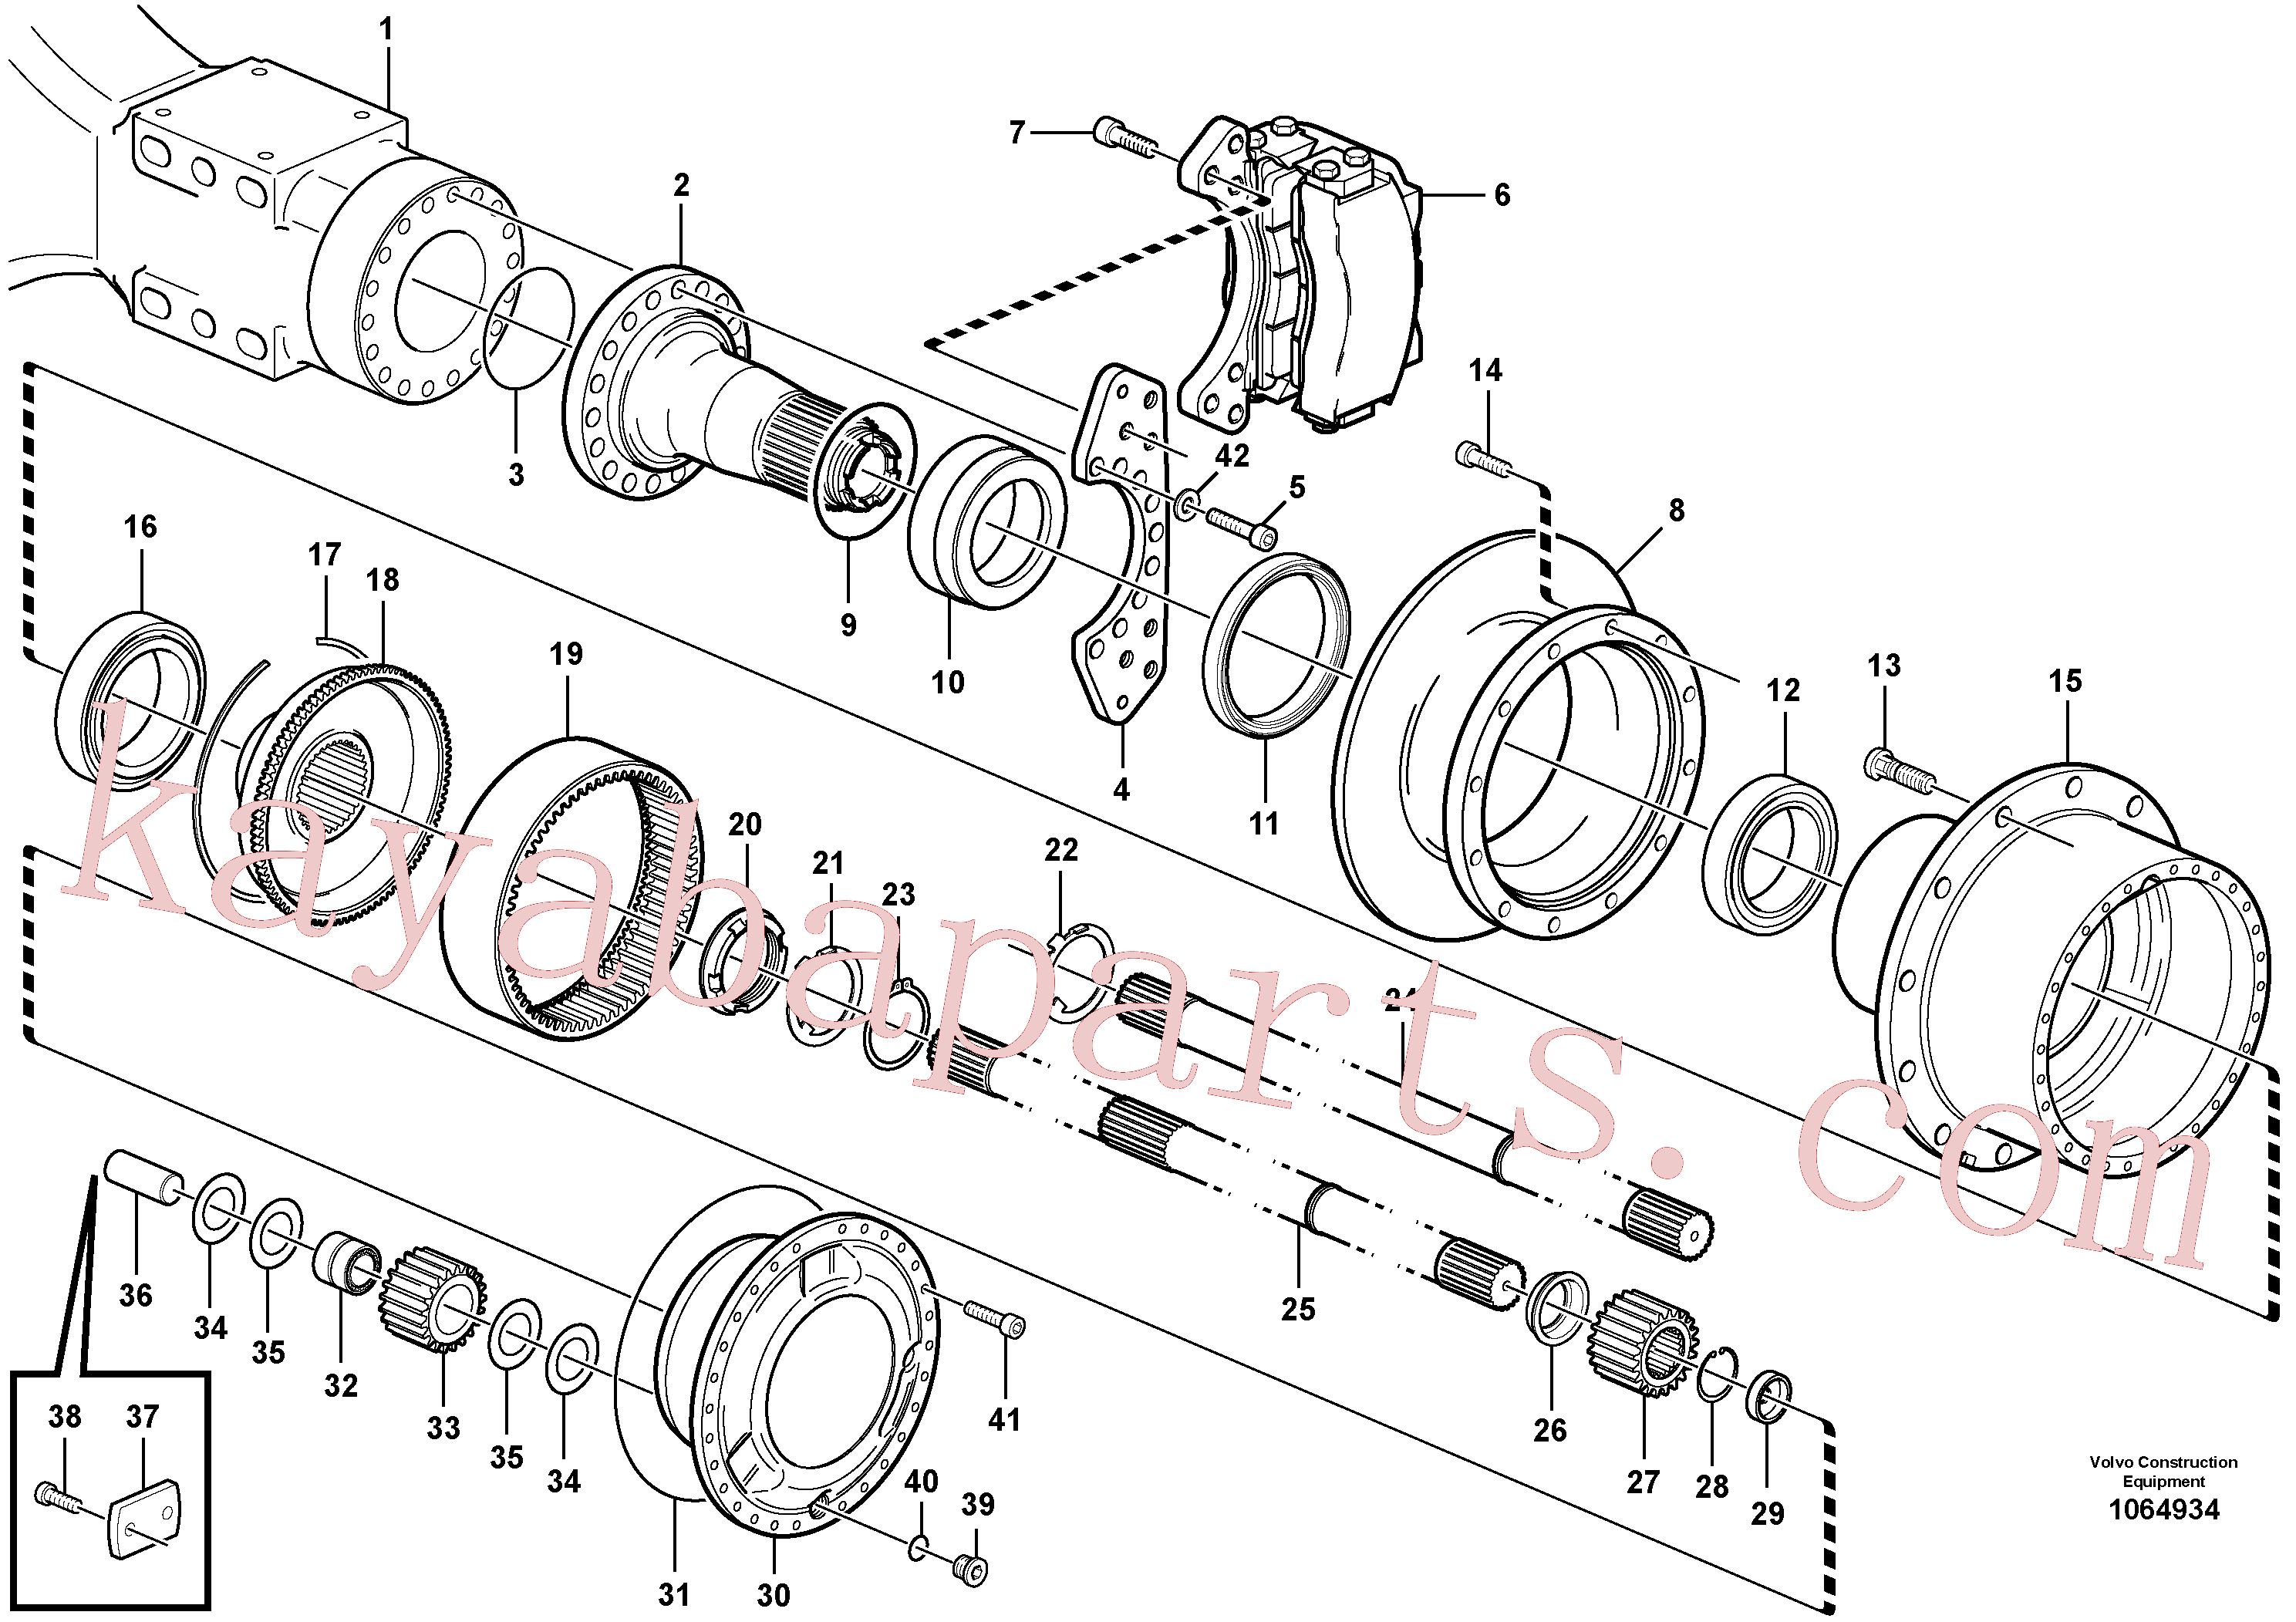 VOE946304 for Volvo Hub reduction, axle 1 load unit, Hub reduction, axle 2 load unit, Hub reduction, motorunit(1064934 assembly)